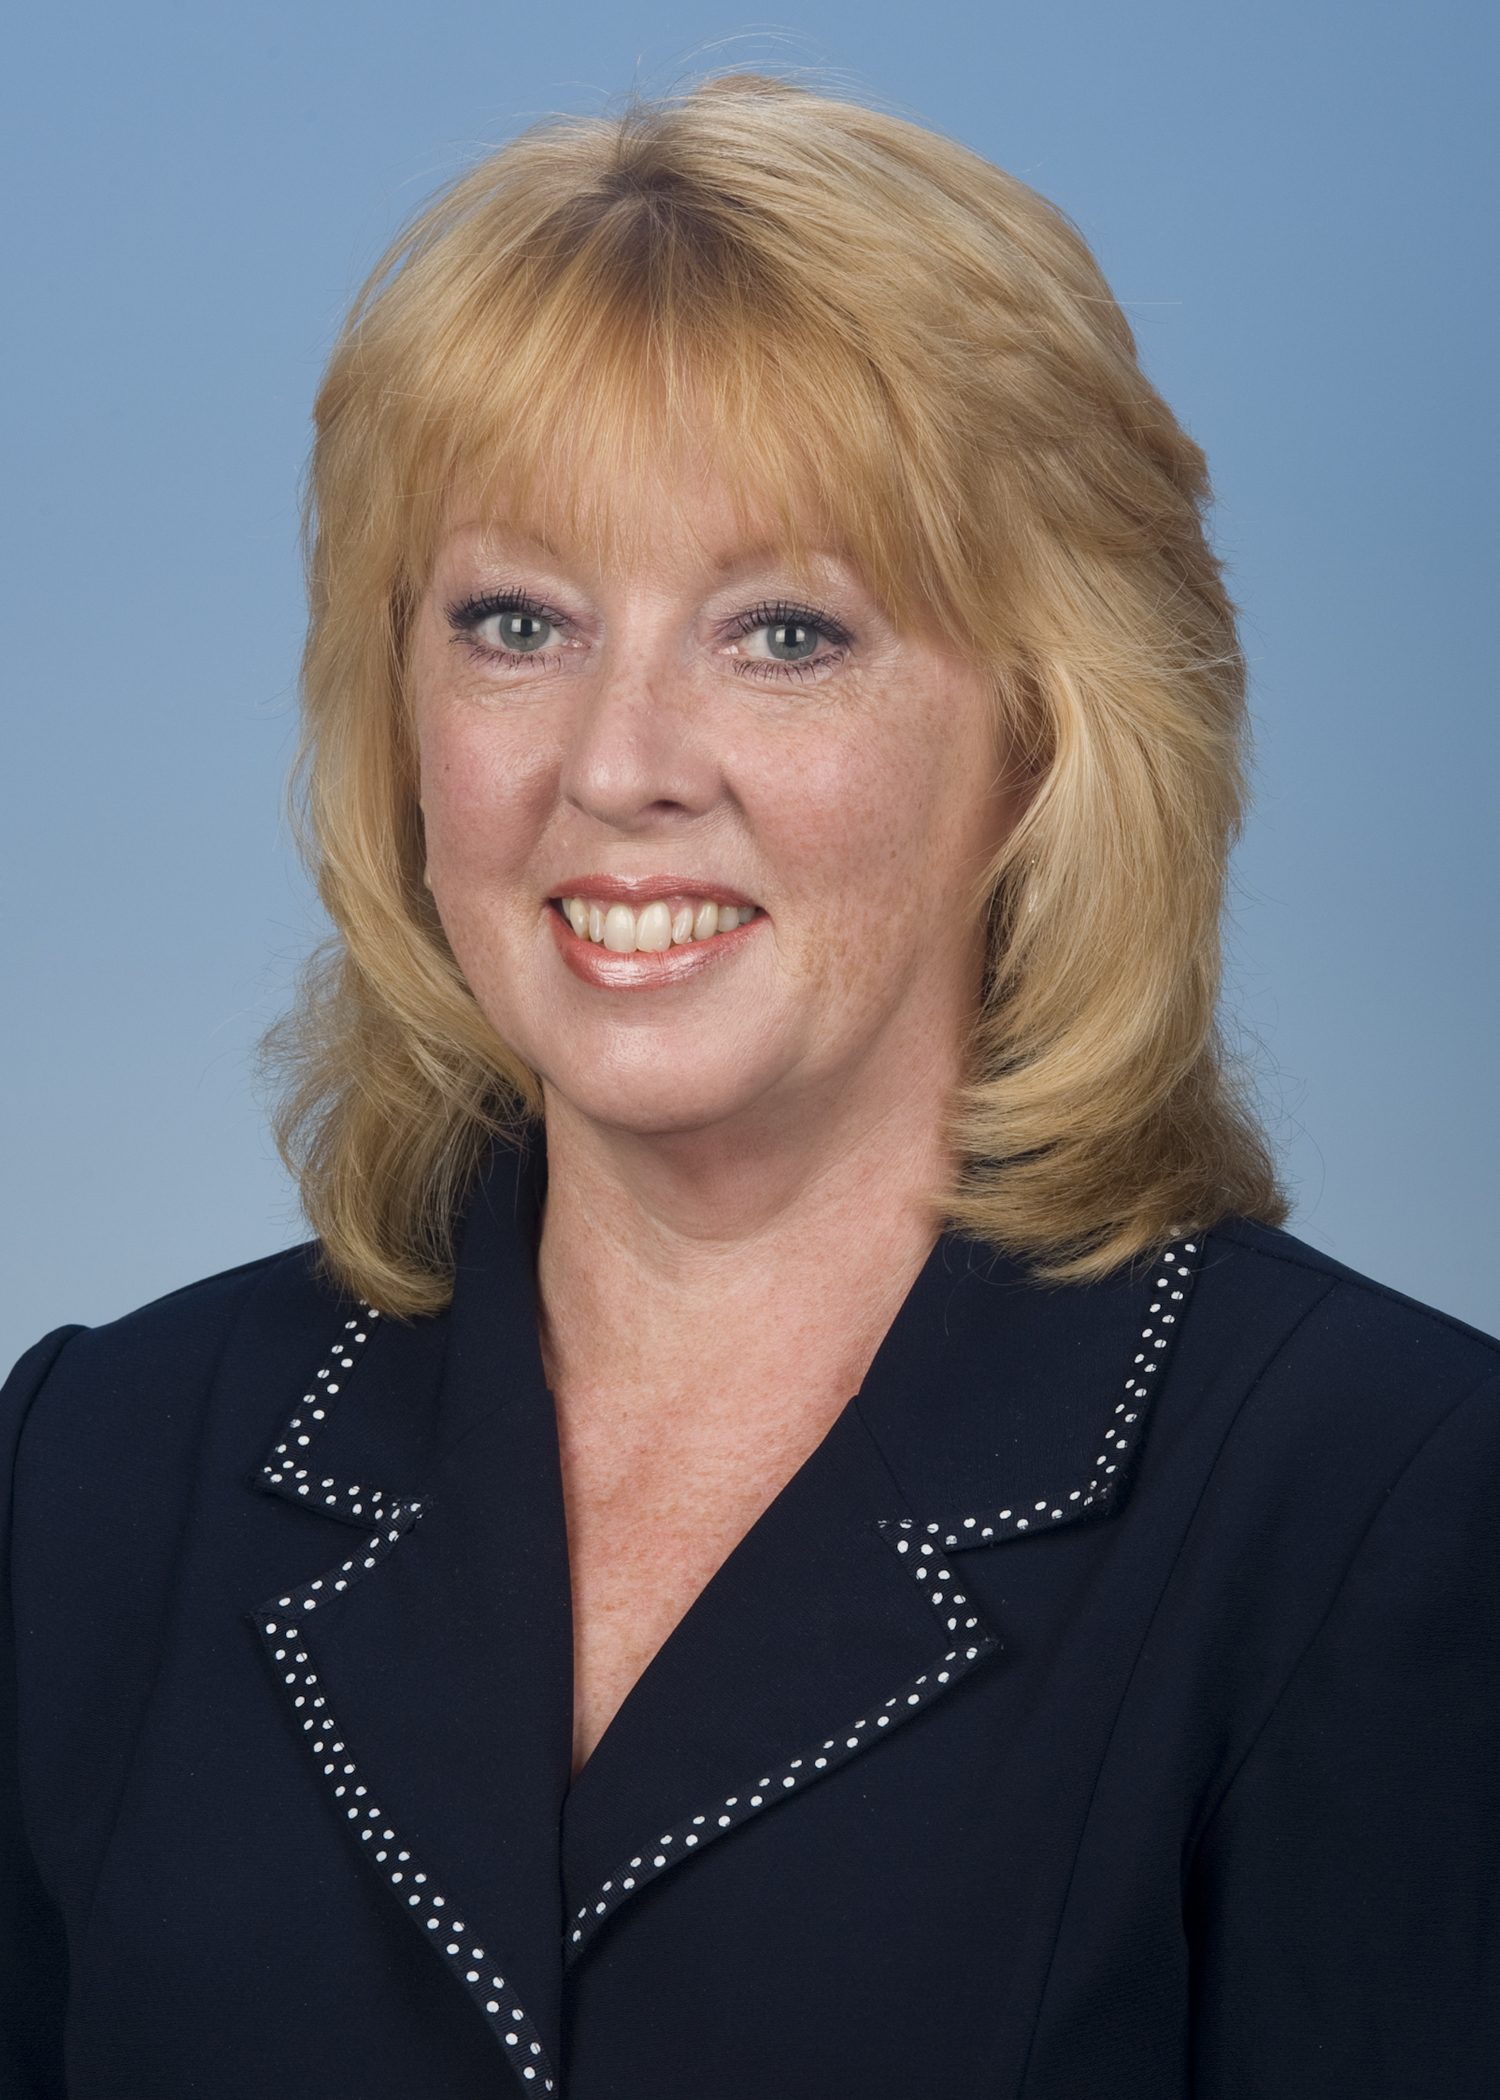 City Clerk Connie McIntyre